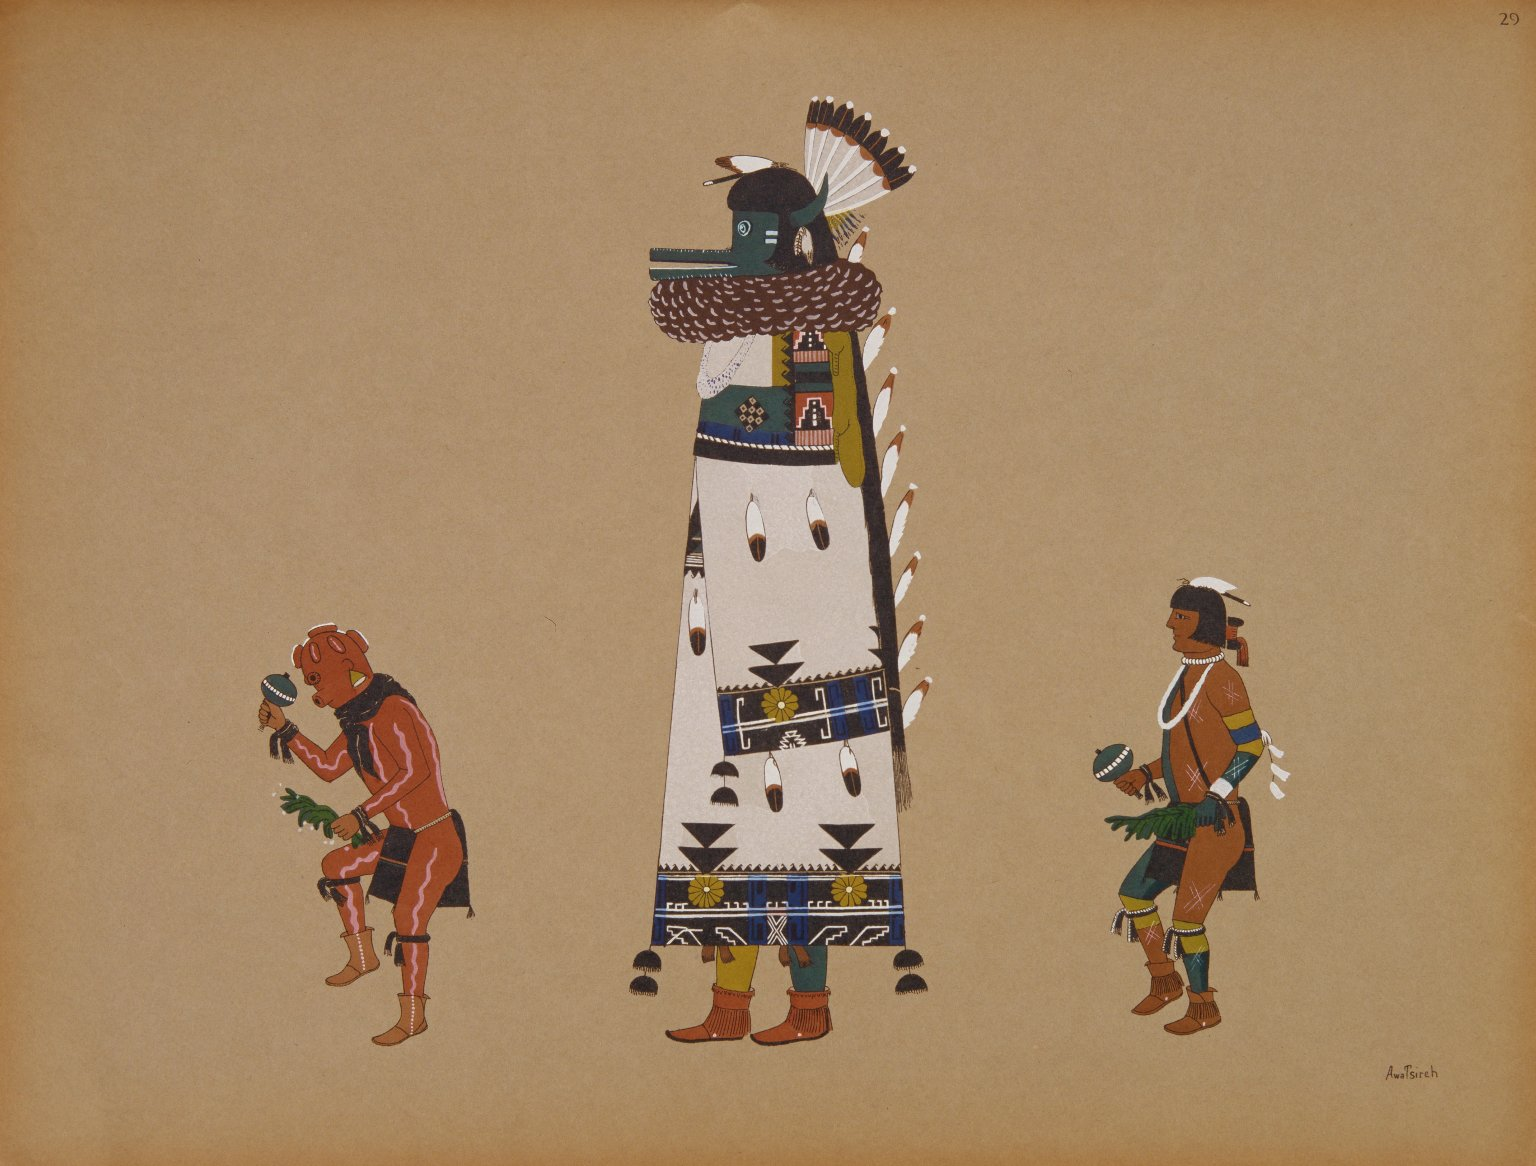 Gigantesque Figure from the Shalako Dance of the Pueblo of Zuni